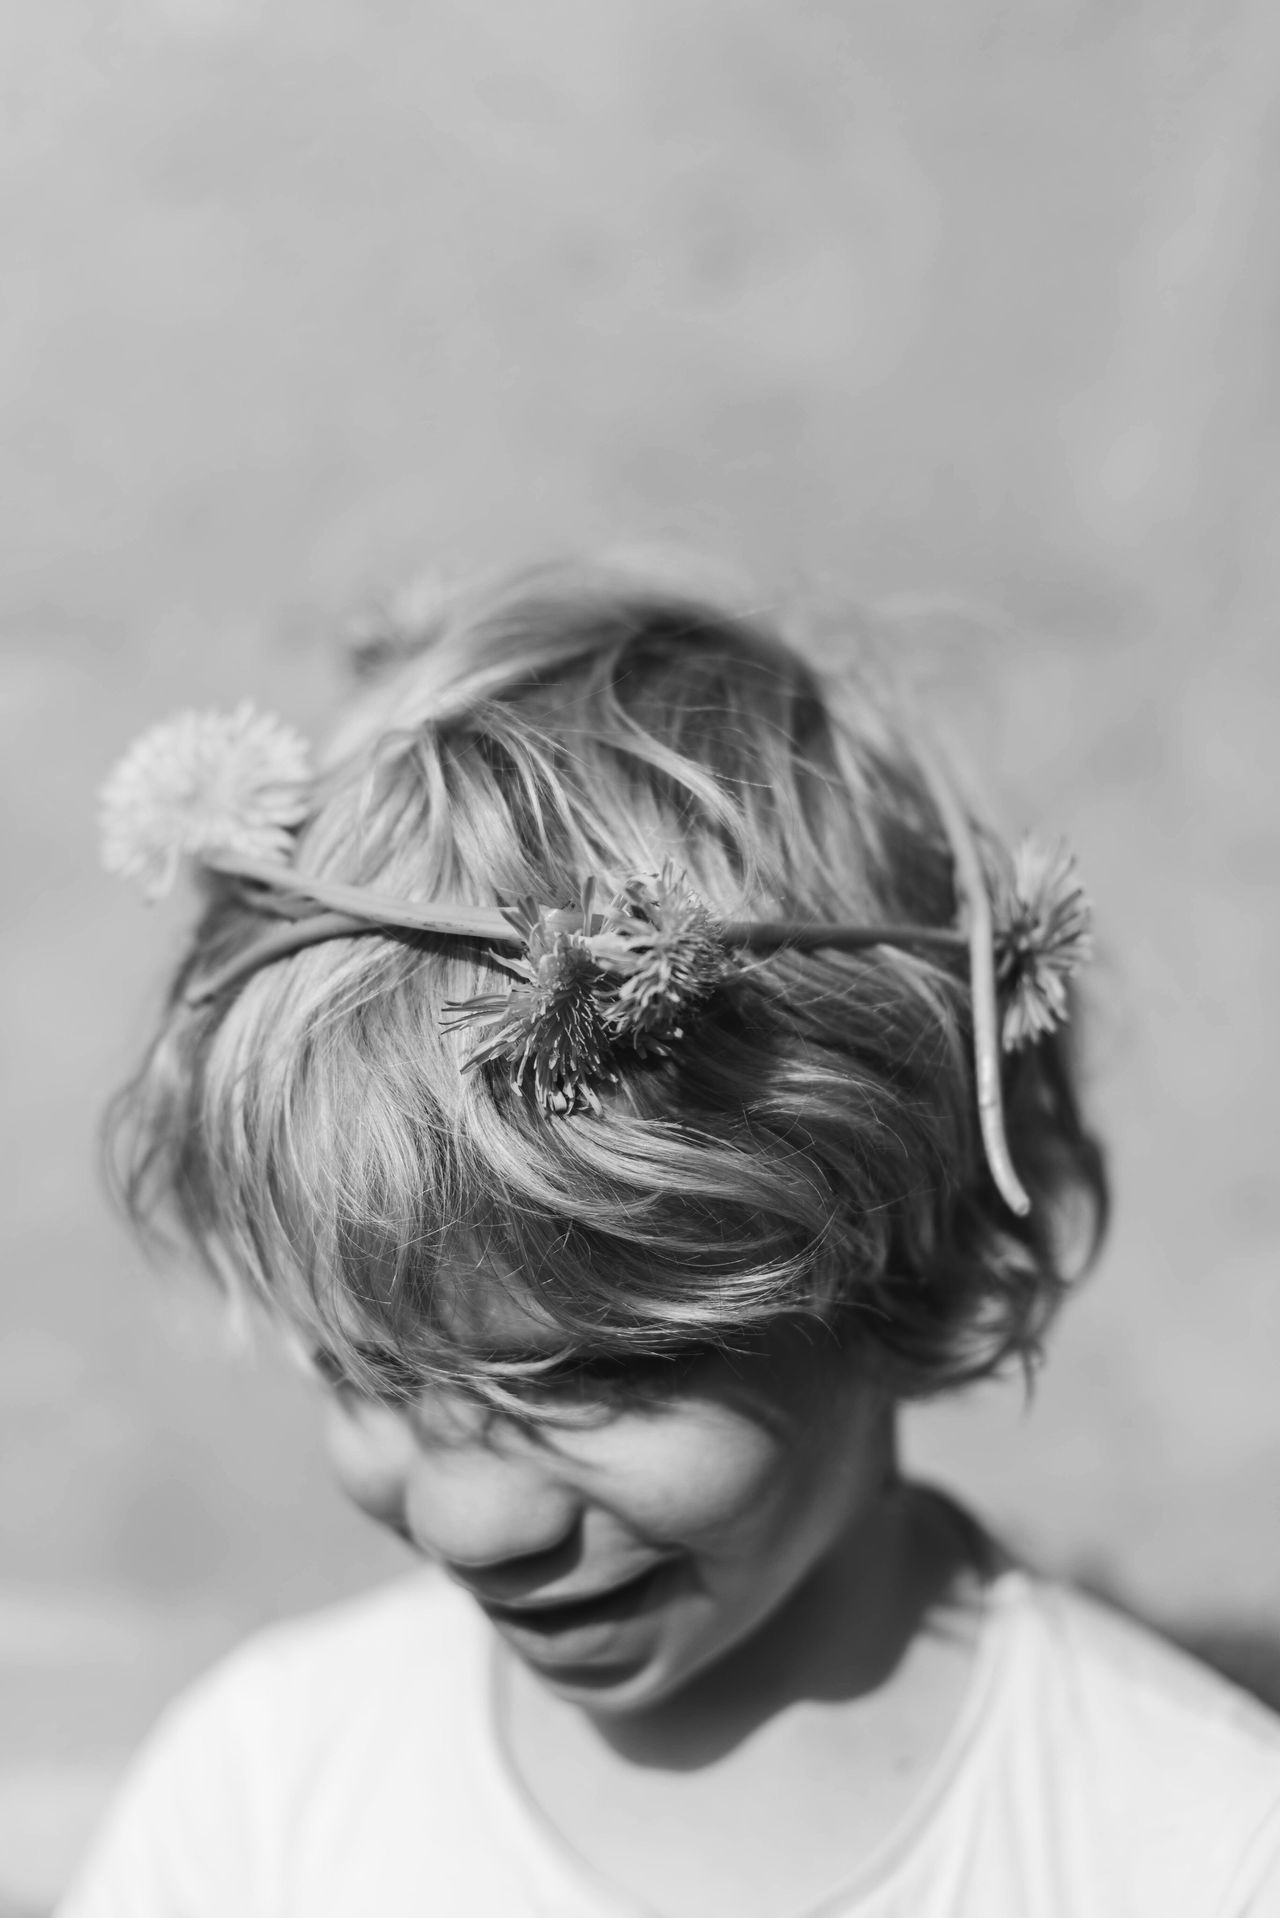 Childhood Real People Boys Blond Hair Close-up Lifestyles People Elementary Age One Person Focus On Foreground Day Sunlight Flower Flowercrown  TheWeekOnEyeEM Summertime Sunshine Spring Blackandwhite Black And White Photography Dandelion Dandelions Kids Kids Being Kids Kidsphotography The Week On EyeEm